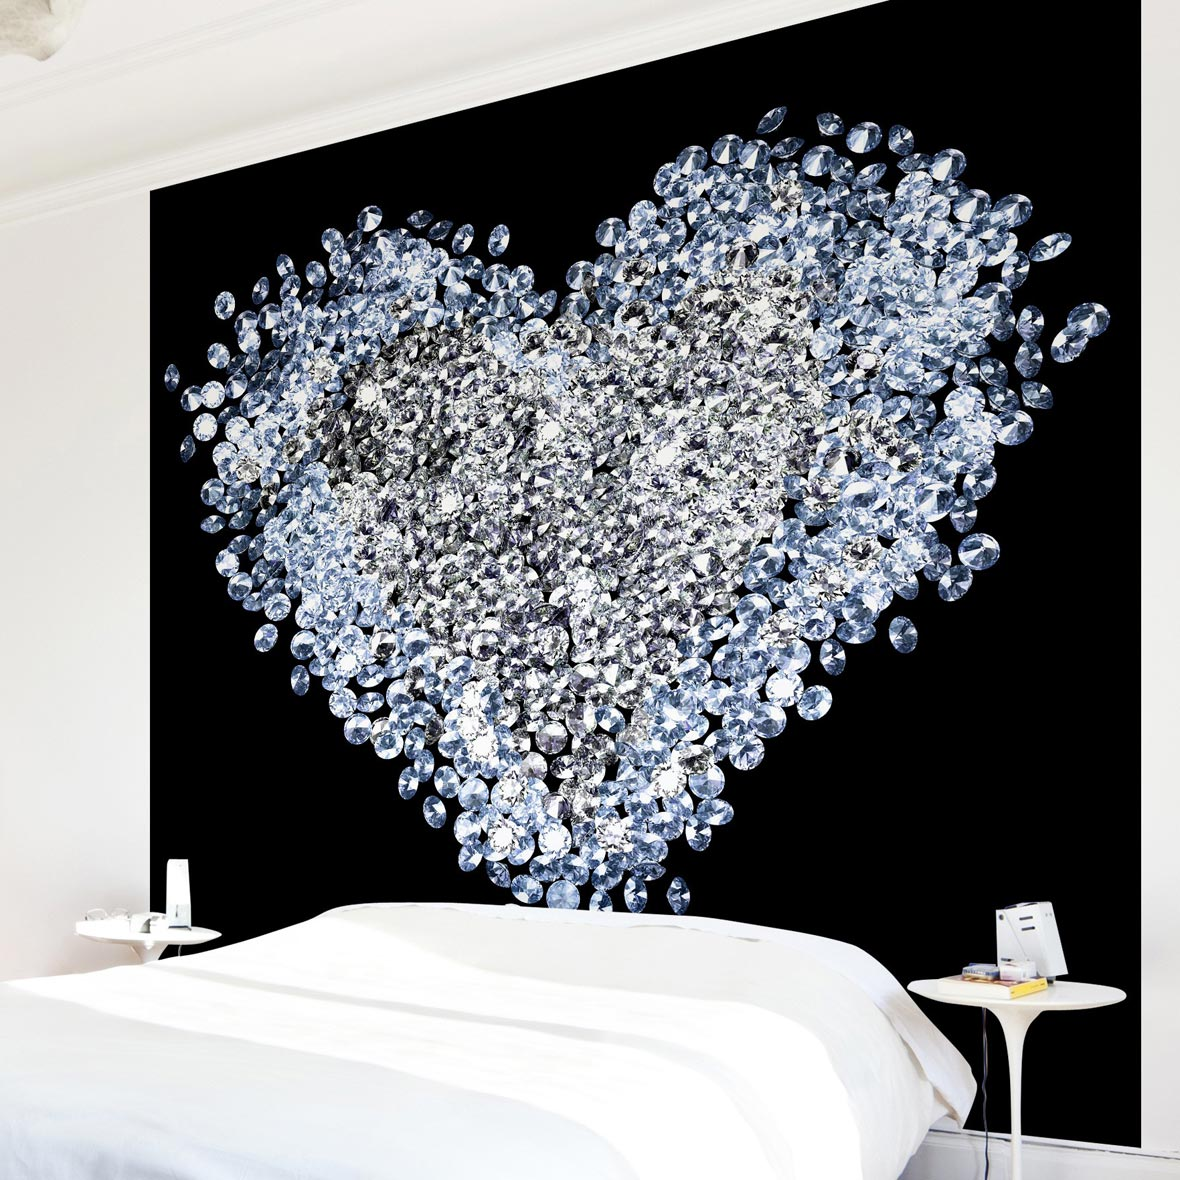 tapeten-ratgeber | wall art in xxl | magazin wallart.de